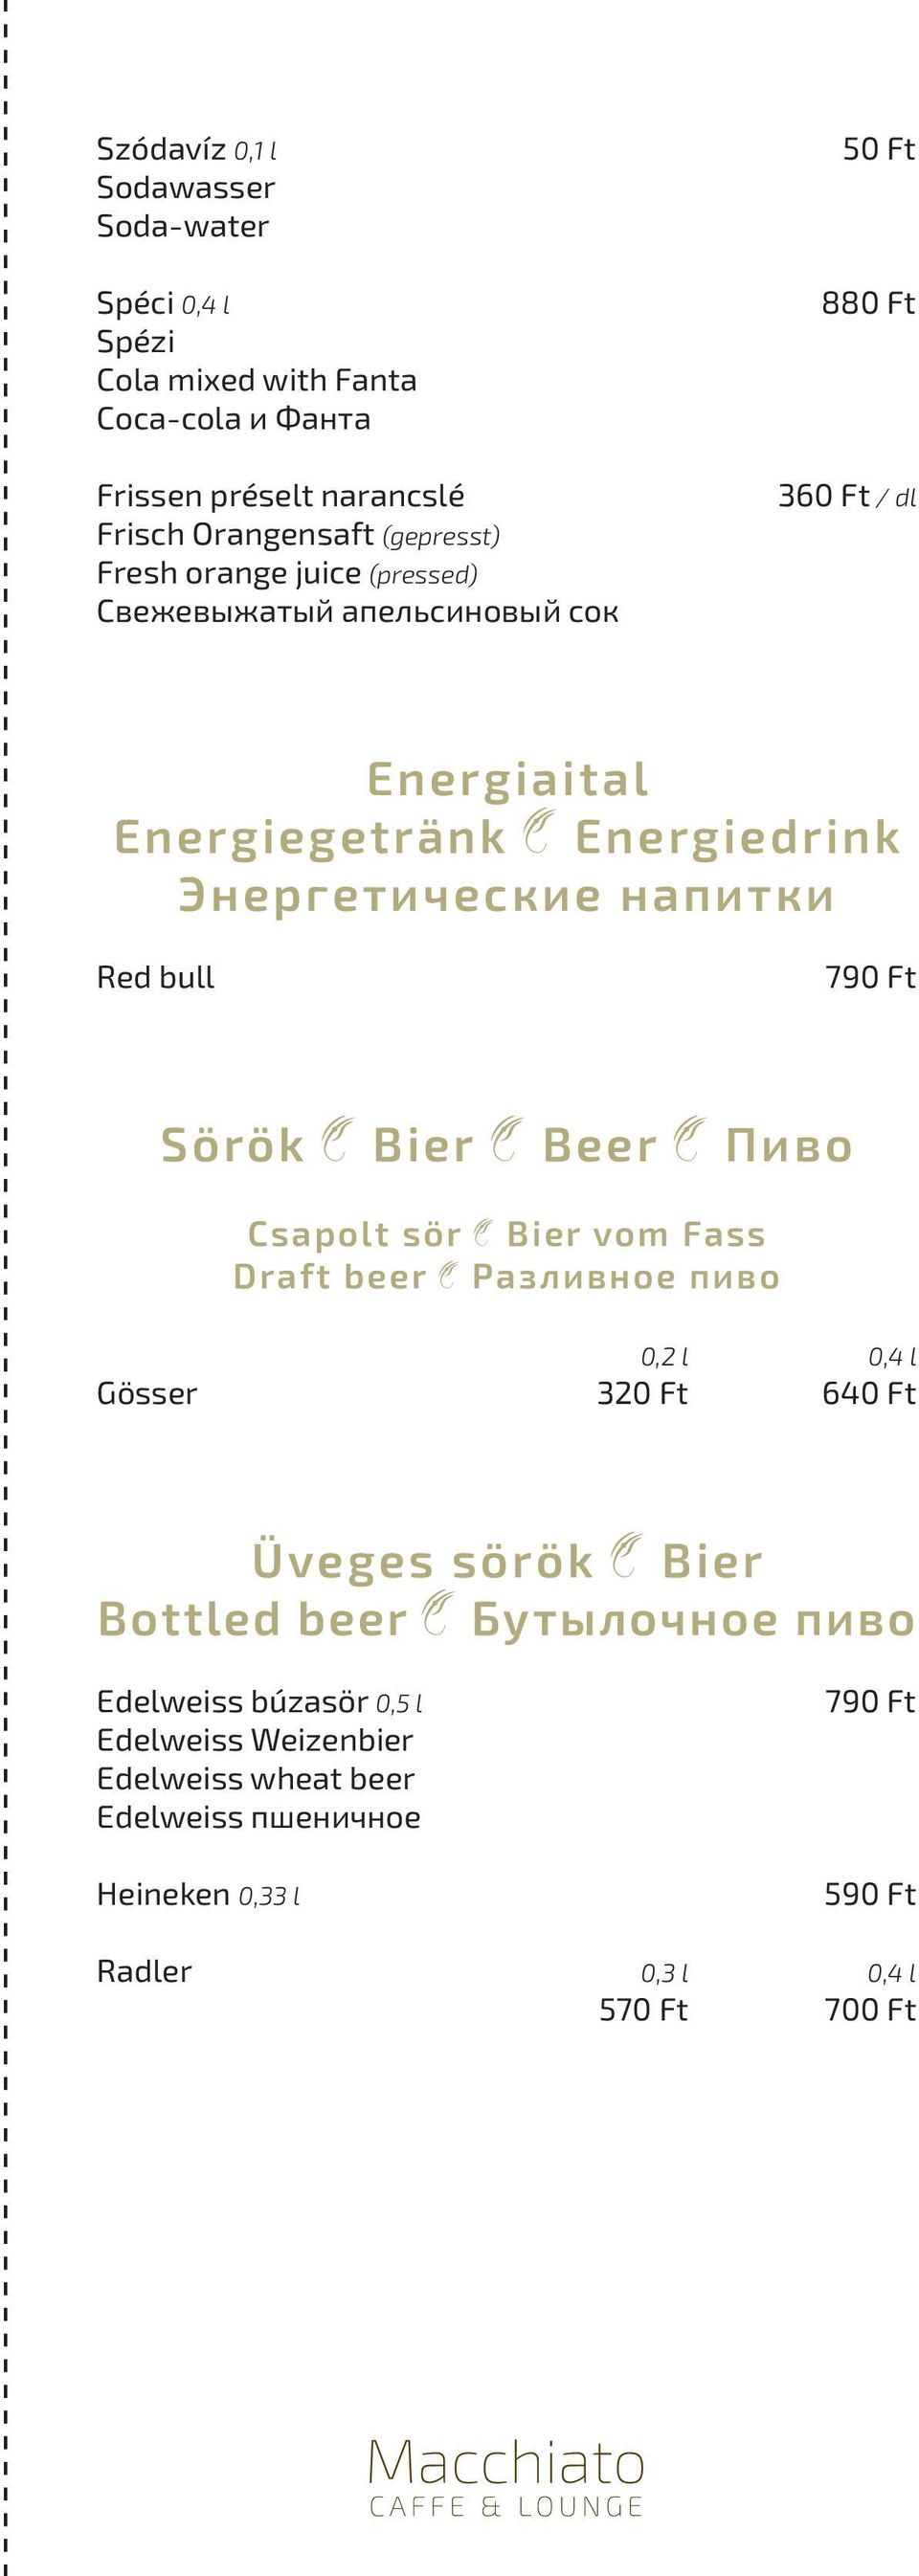 bull 790 Ft Sörök Bier Beer Пиво Csapolt sör Bier vom Fass Draft beer Разливное пиво 0,2 l 0,4 l Gösser 320 Ft 640 Ft Üveges sörök Bier Bottled beer